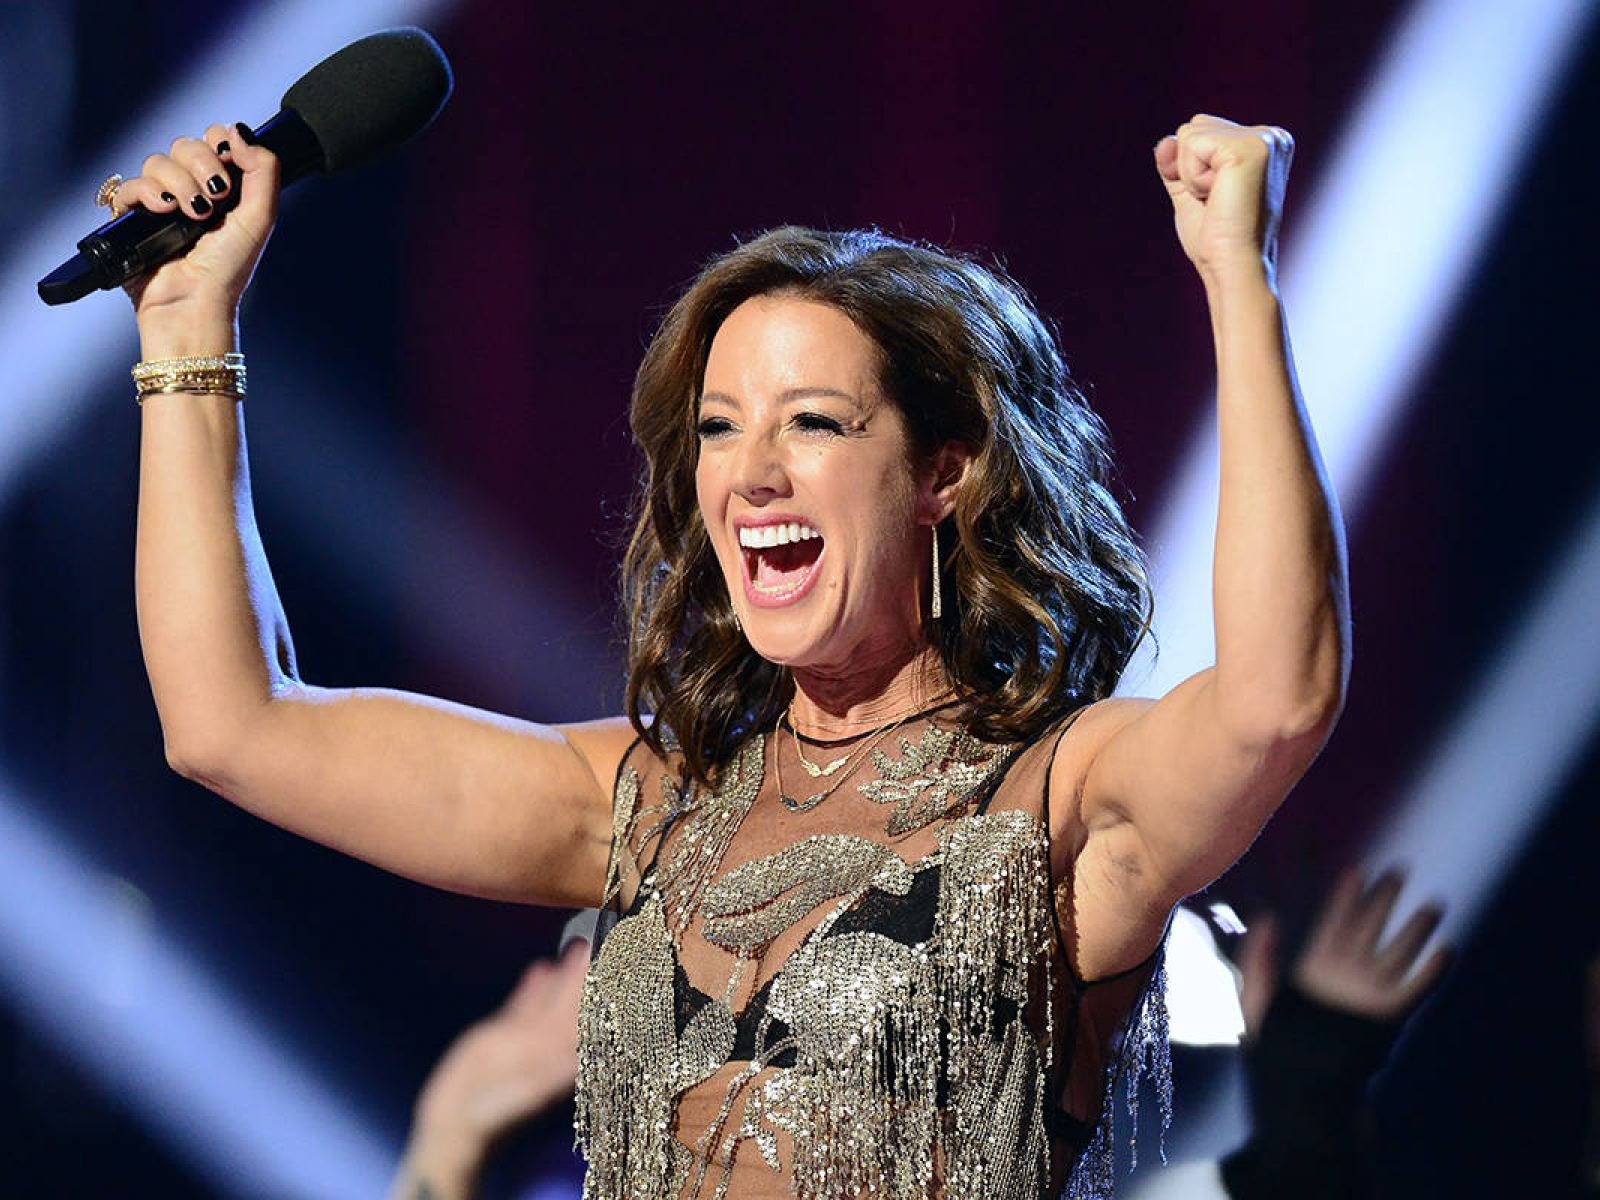 Main image for event titled Sarah McLachlan